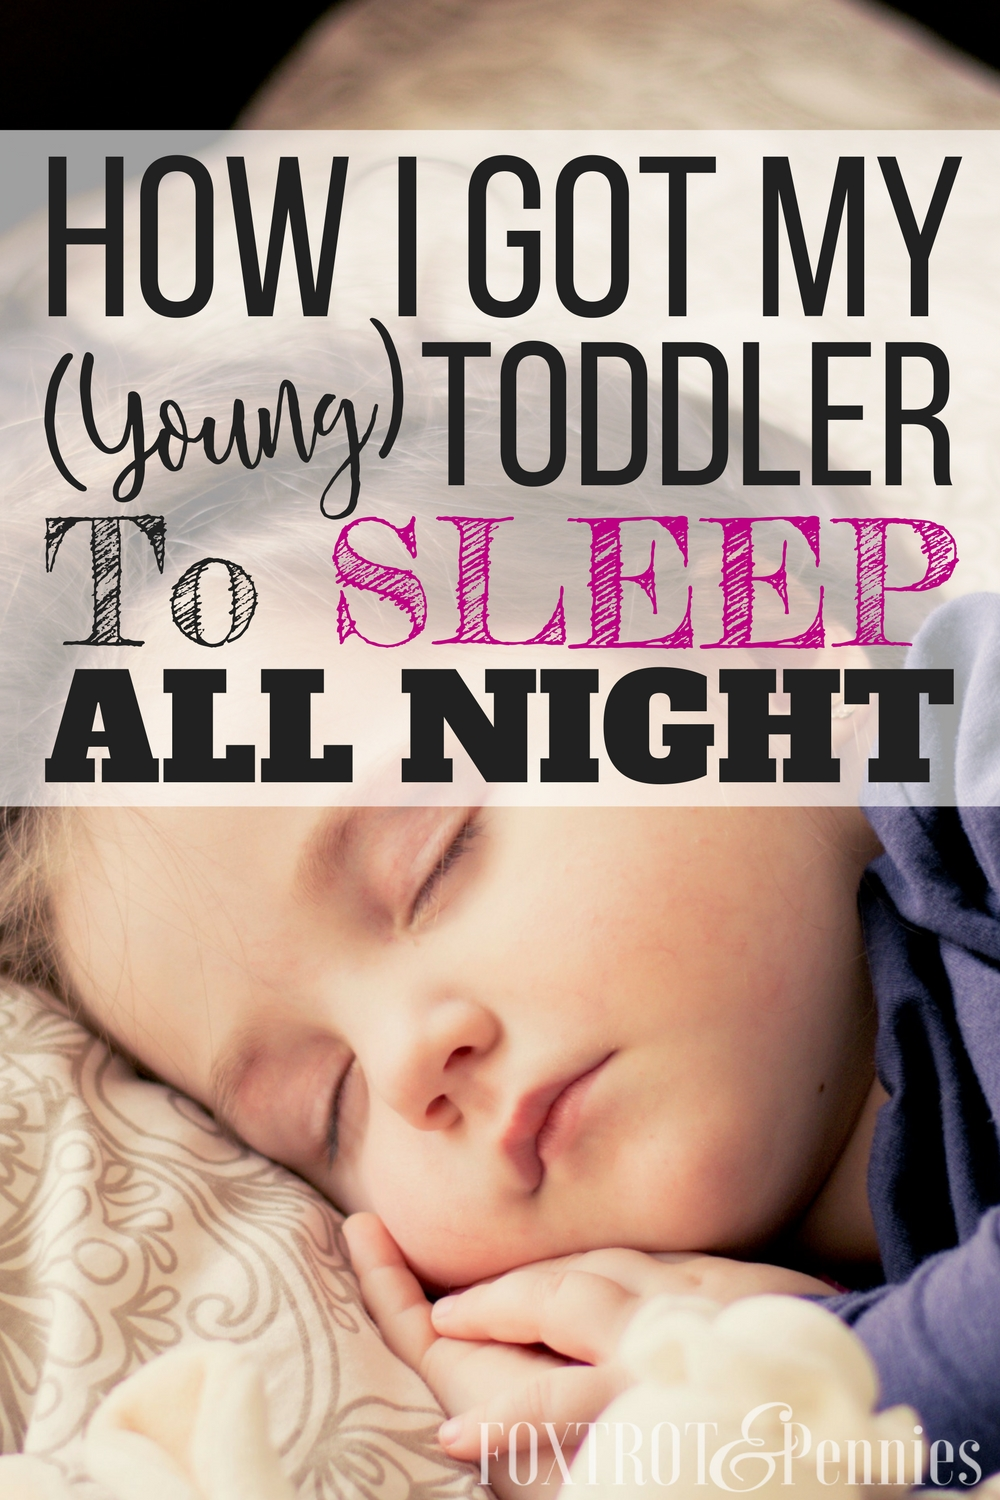 I did all of these things andI couldn't believe it, I actually got my toddler to sleep through the night! I tried everything, but most articles were aimed more at older toddlers that could communicate better--I had such a hard time finding ones for young toddlers! Finally! Now to get some sleep...